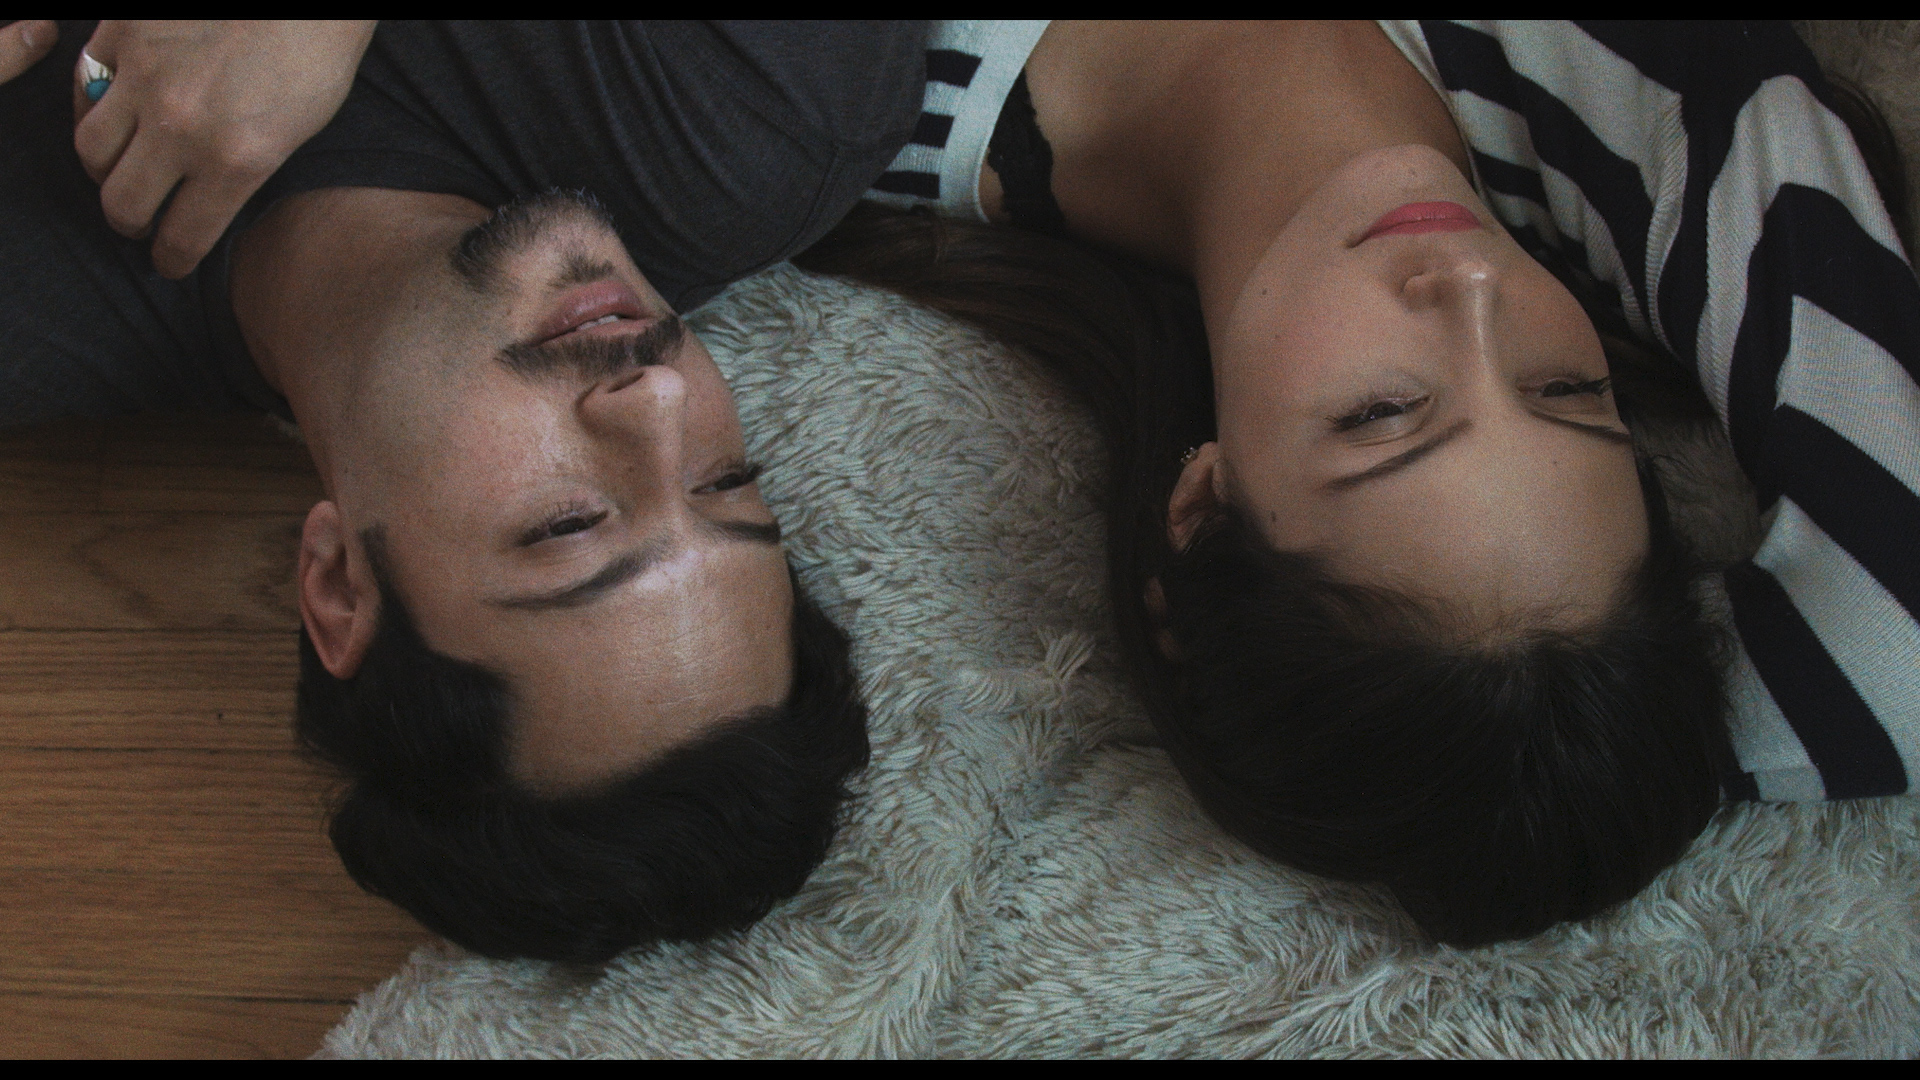 Still from Three Worlds. Amir Motlagh & Samantha Robinson